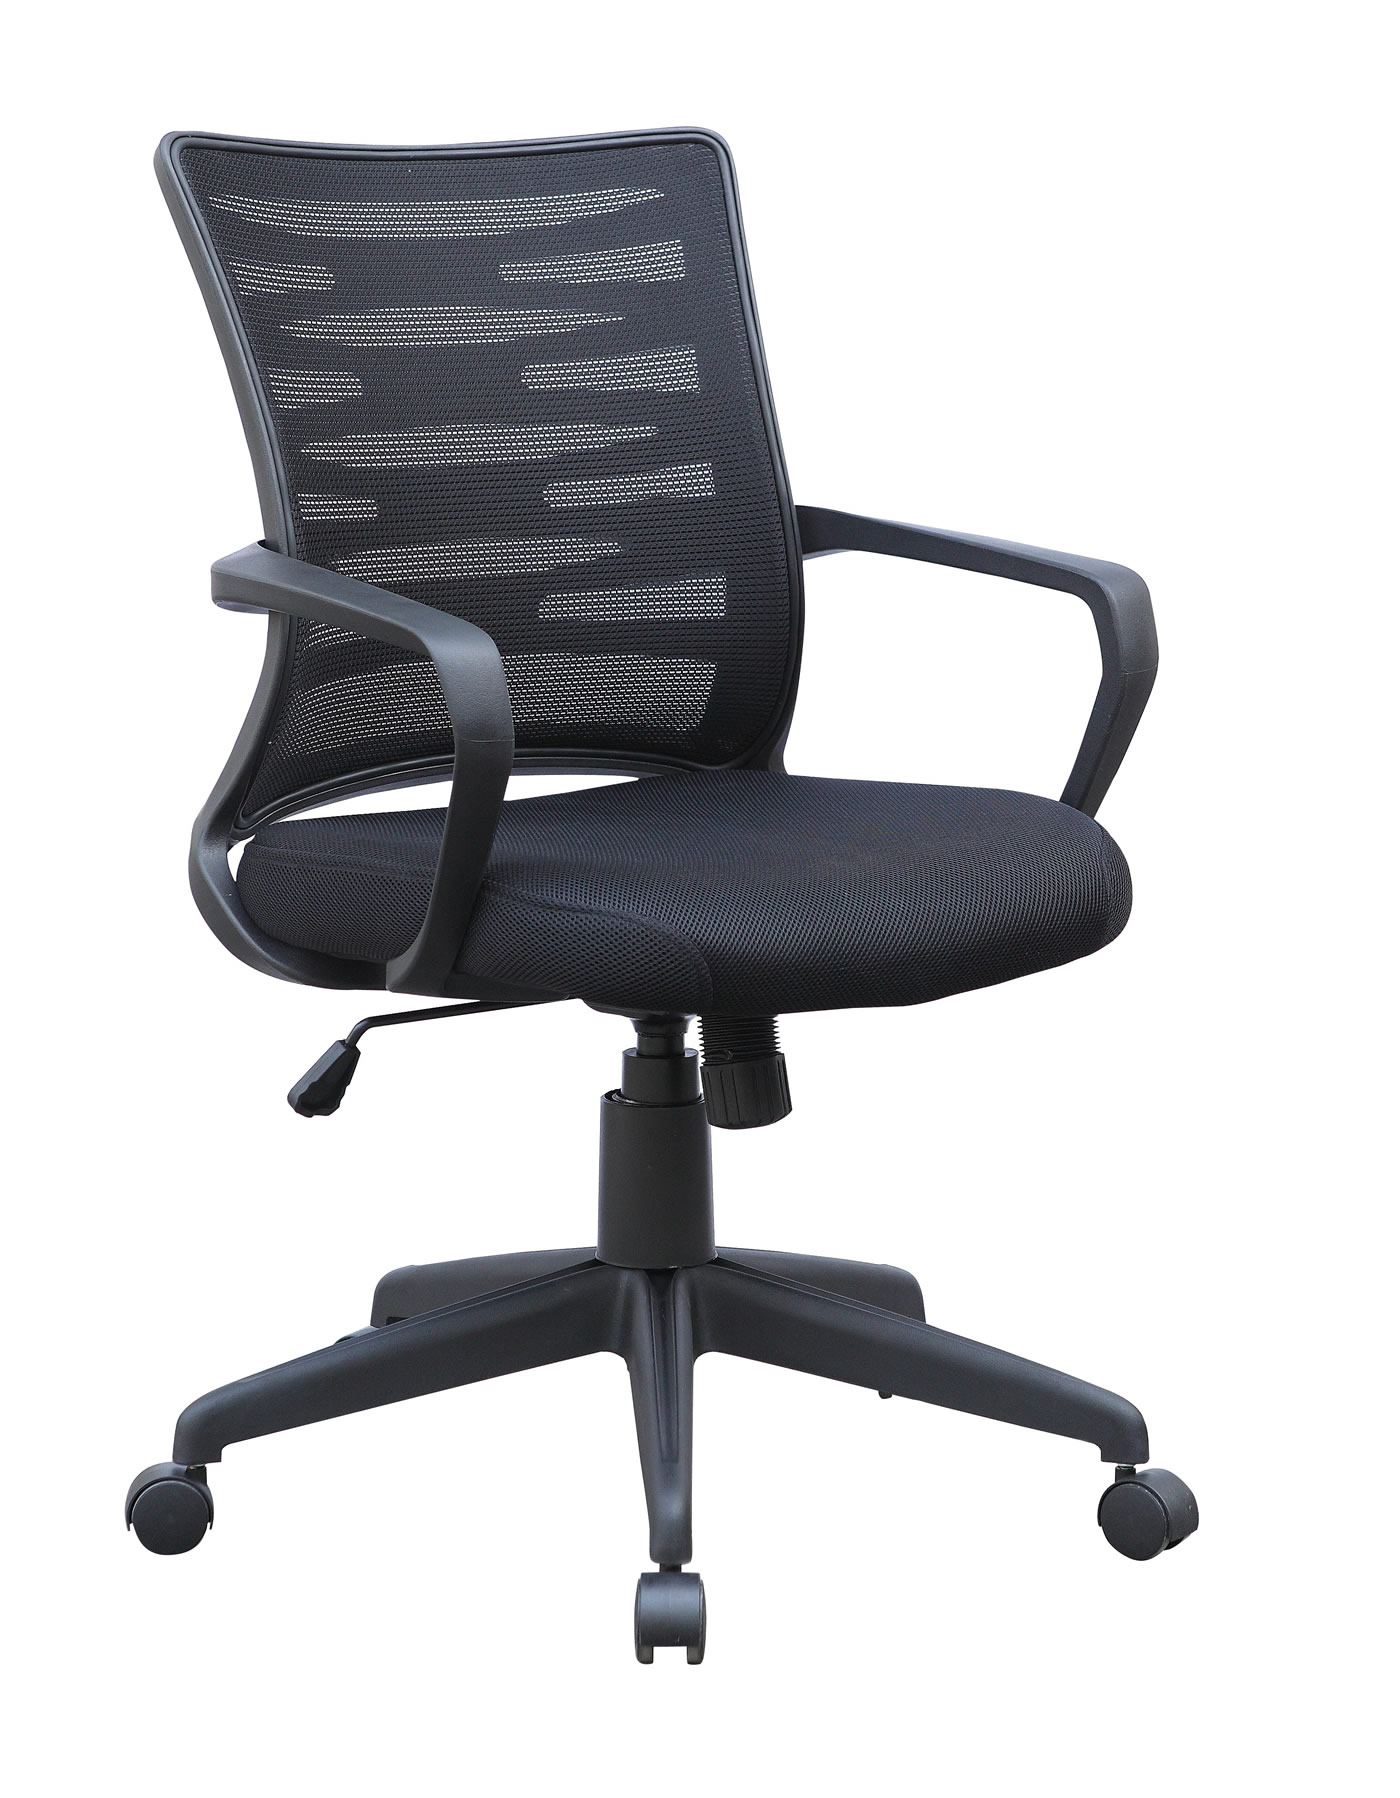 tops texas office products supply used and new office furniture kb8901a mesh back task chair